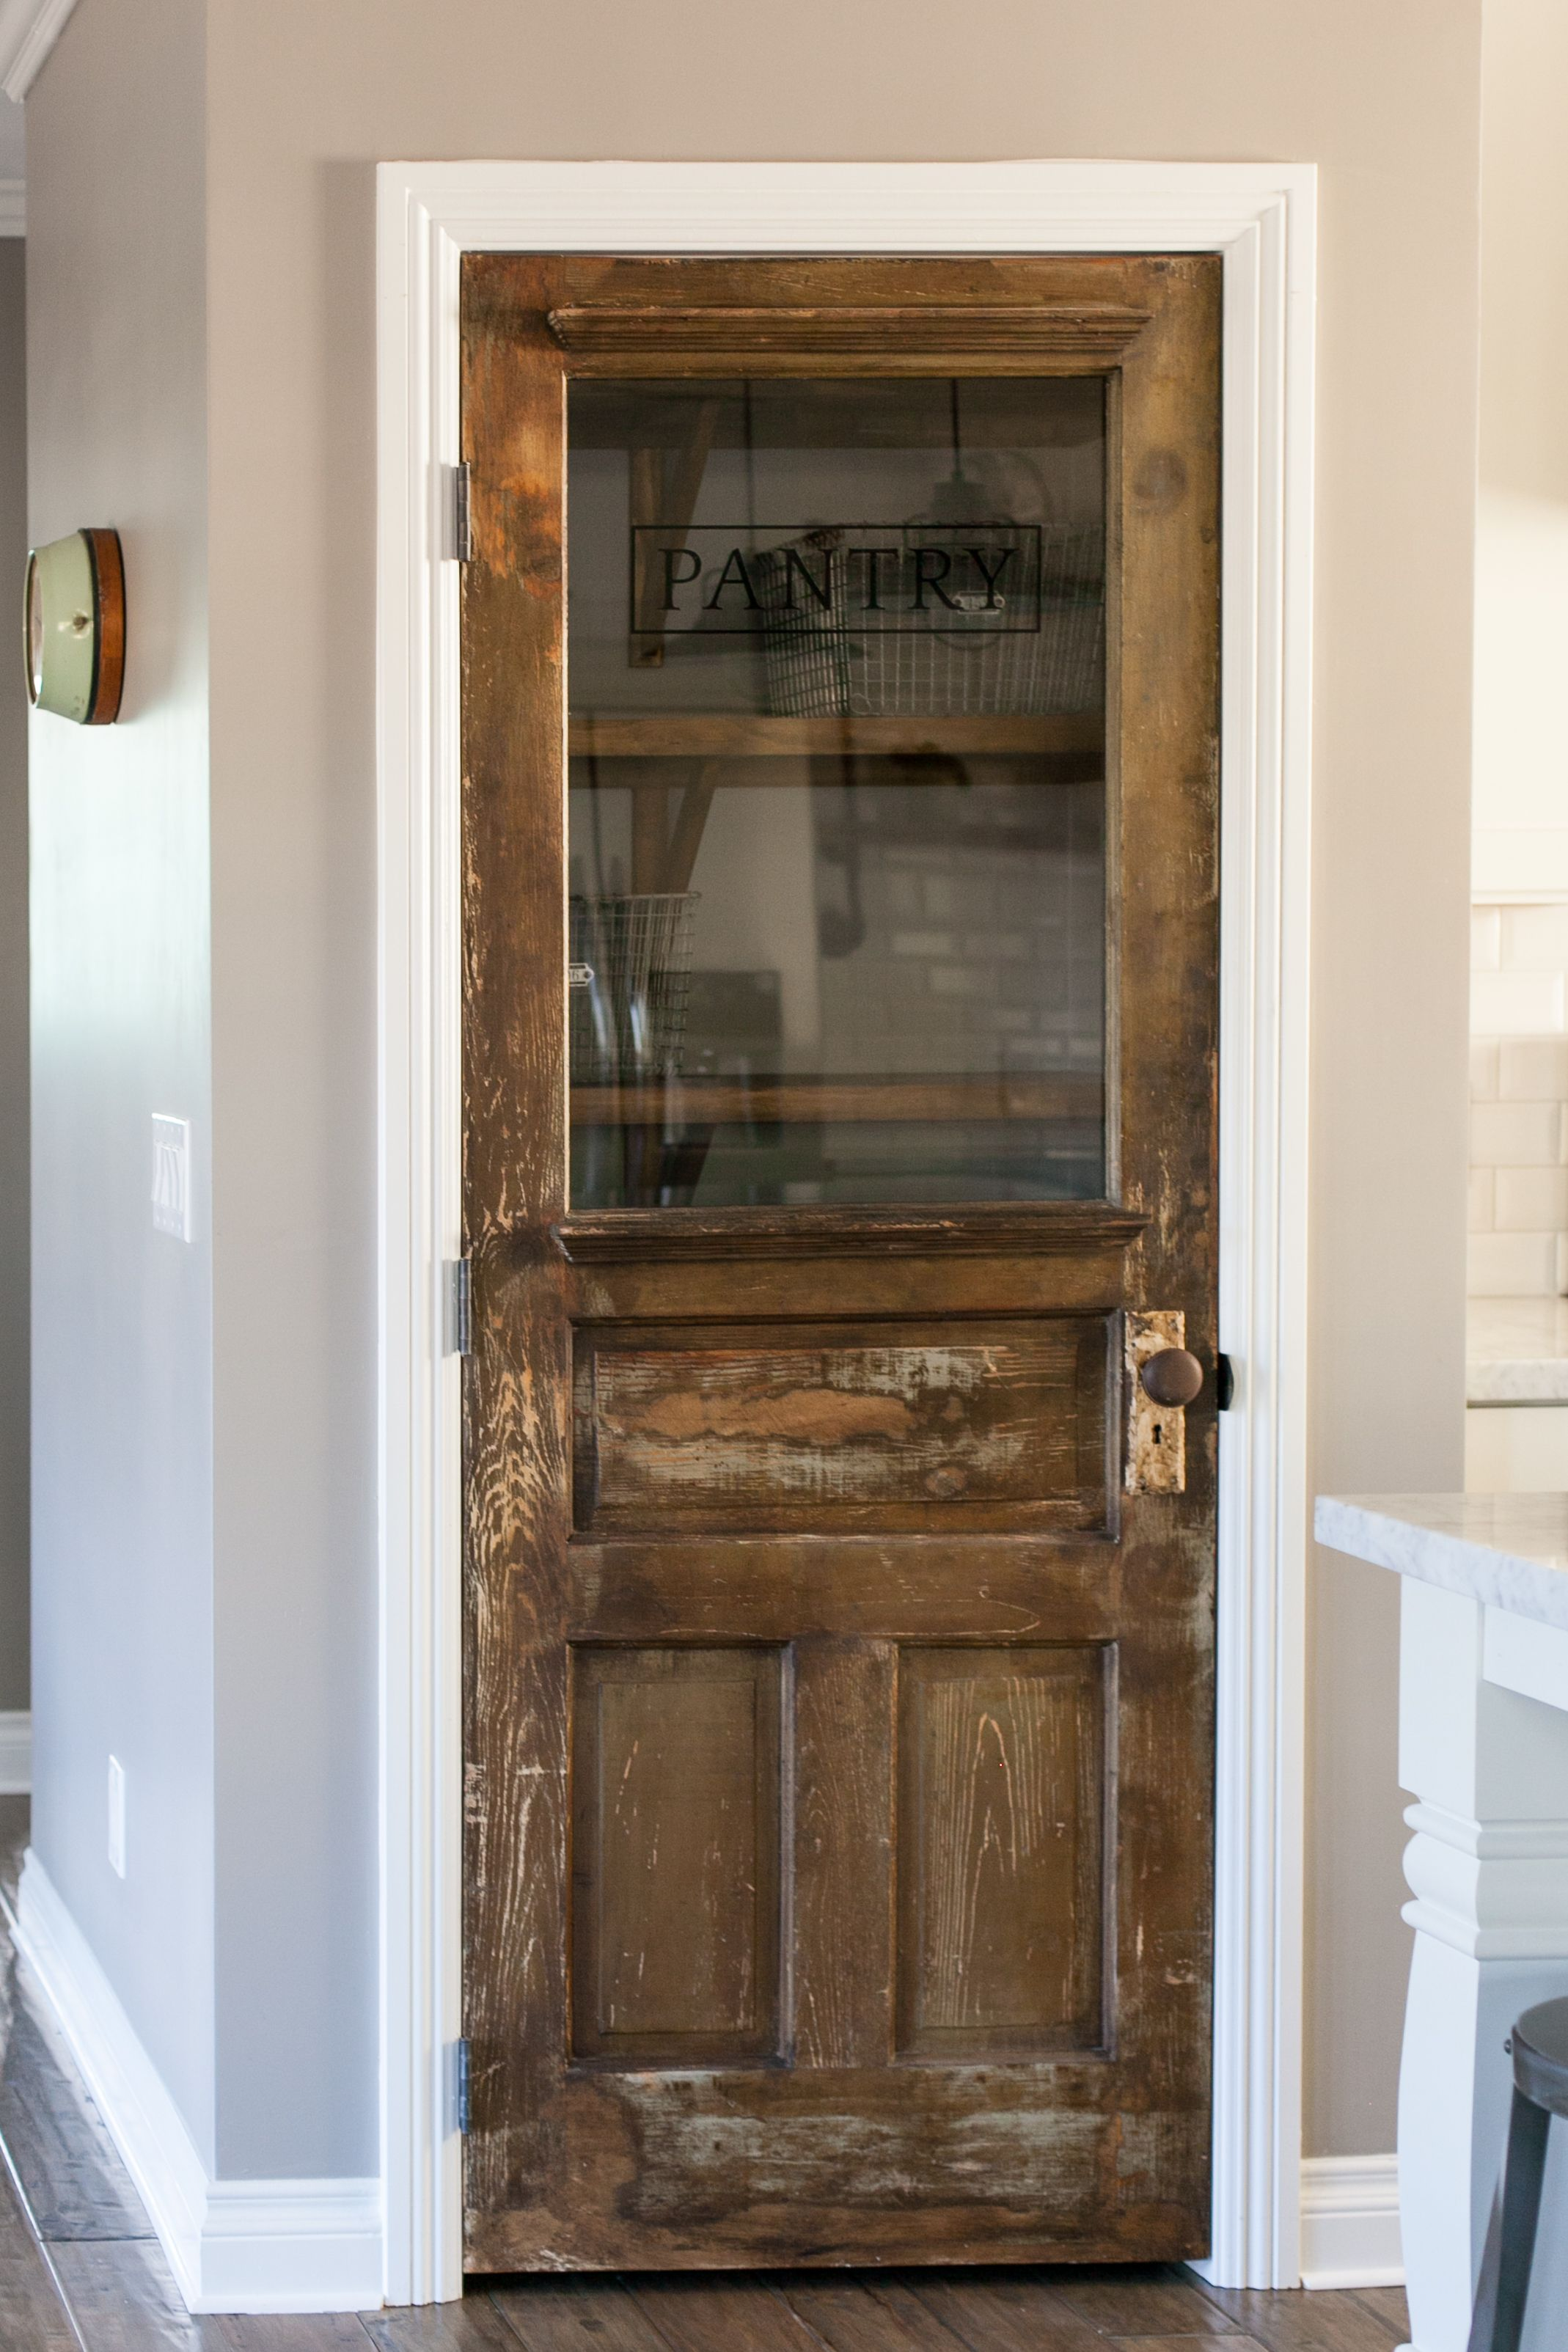 Pin by caroline mezoian on 2nd floor pinterest for Farm door ideas